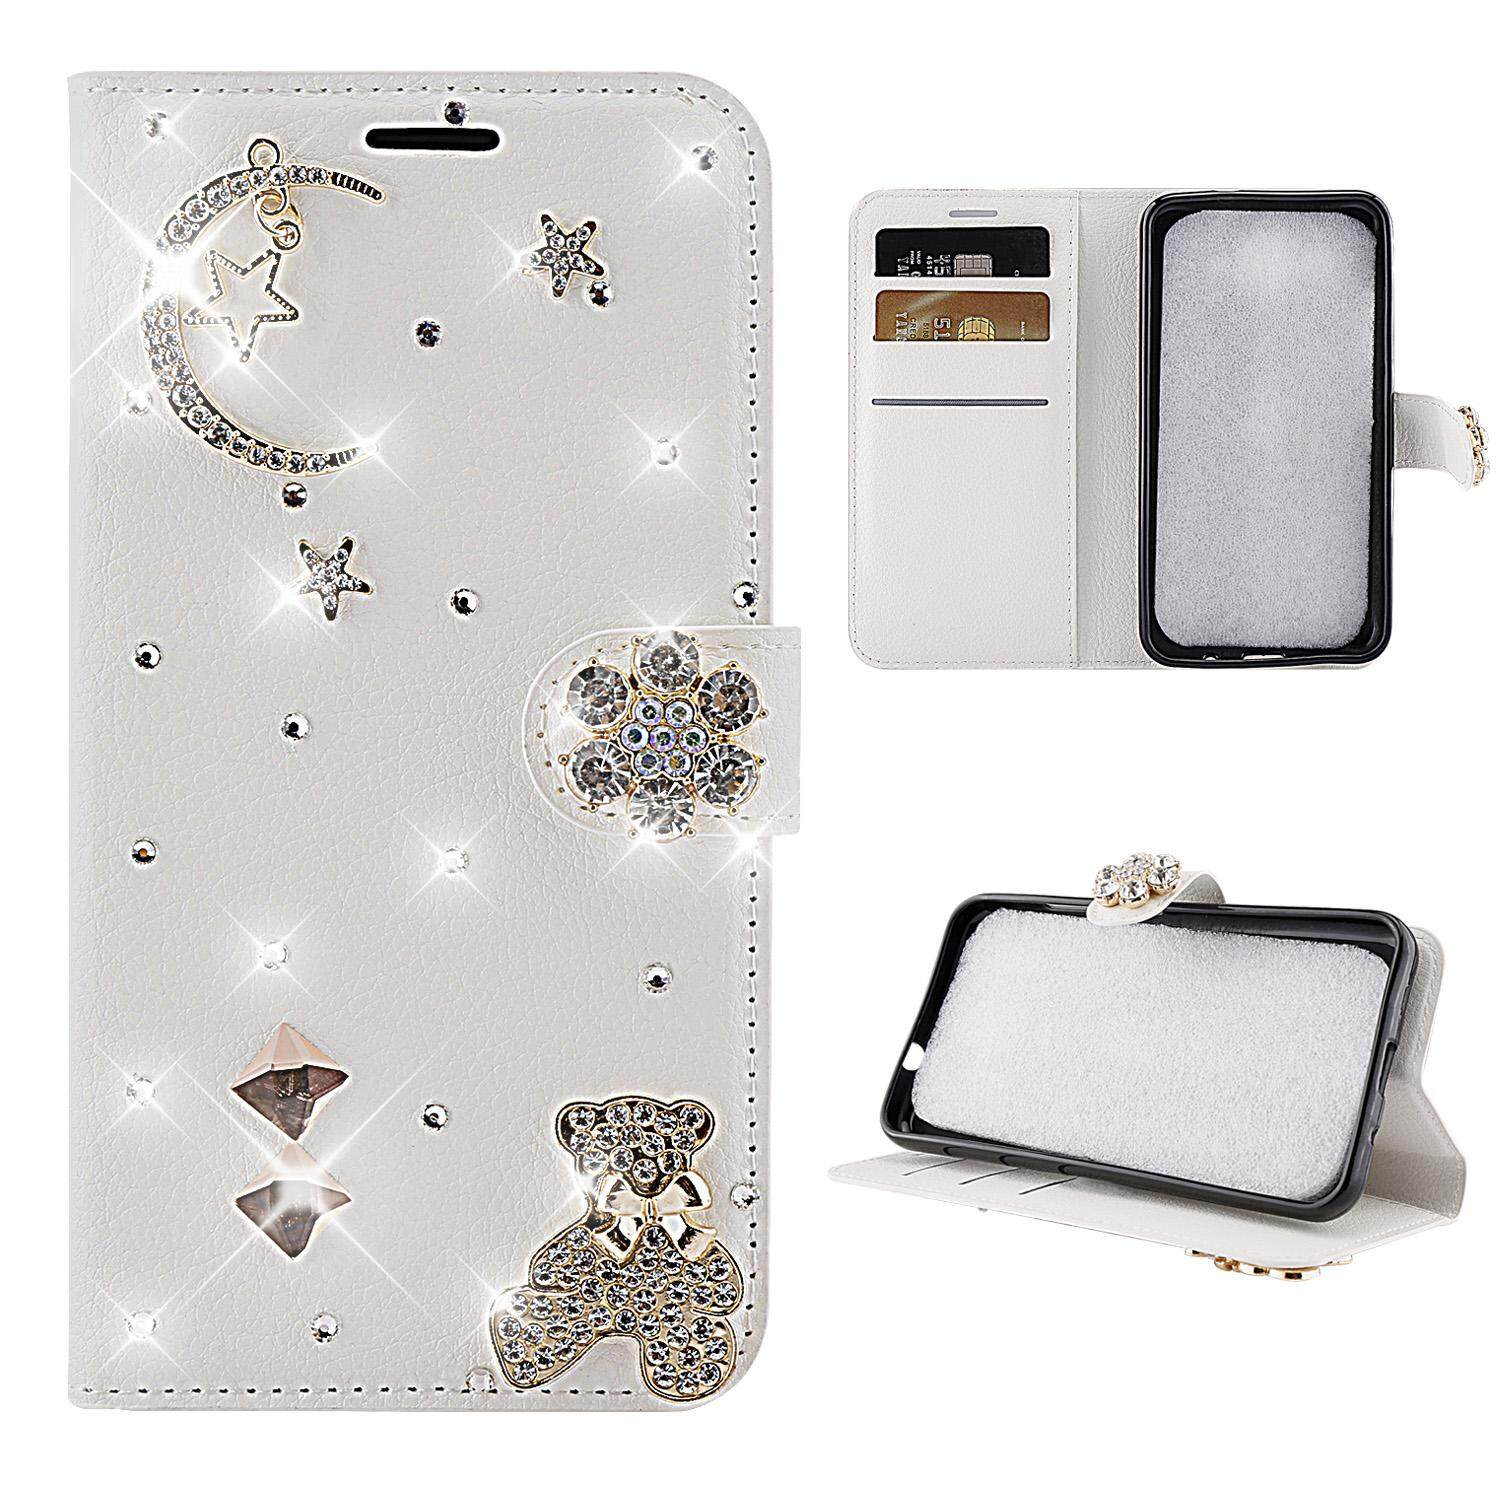 Moonmini Case for Oukitel K10000 Pro 3D Bling Diamond Rhinestones PU Leather Wallet Case Flip Stand Card Slots Cover with Magnetic Closure - intl